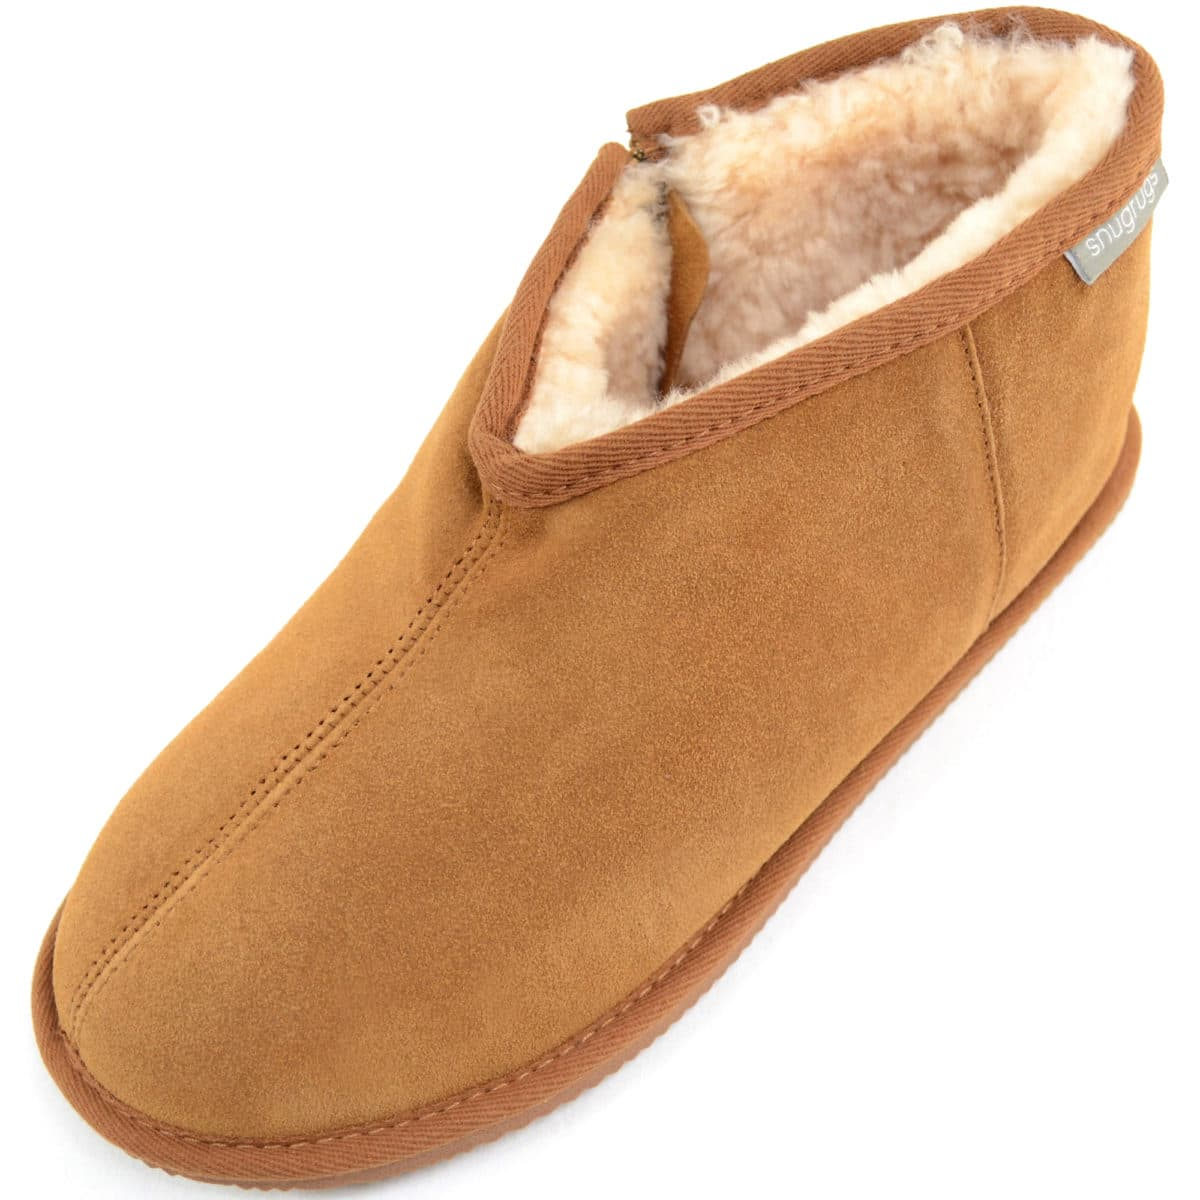 bffc297b513 Men's Boot Zip Slipper - Sheepskin Lining - Benji